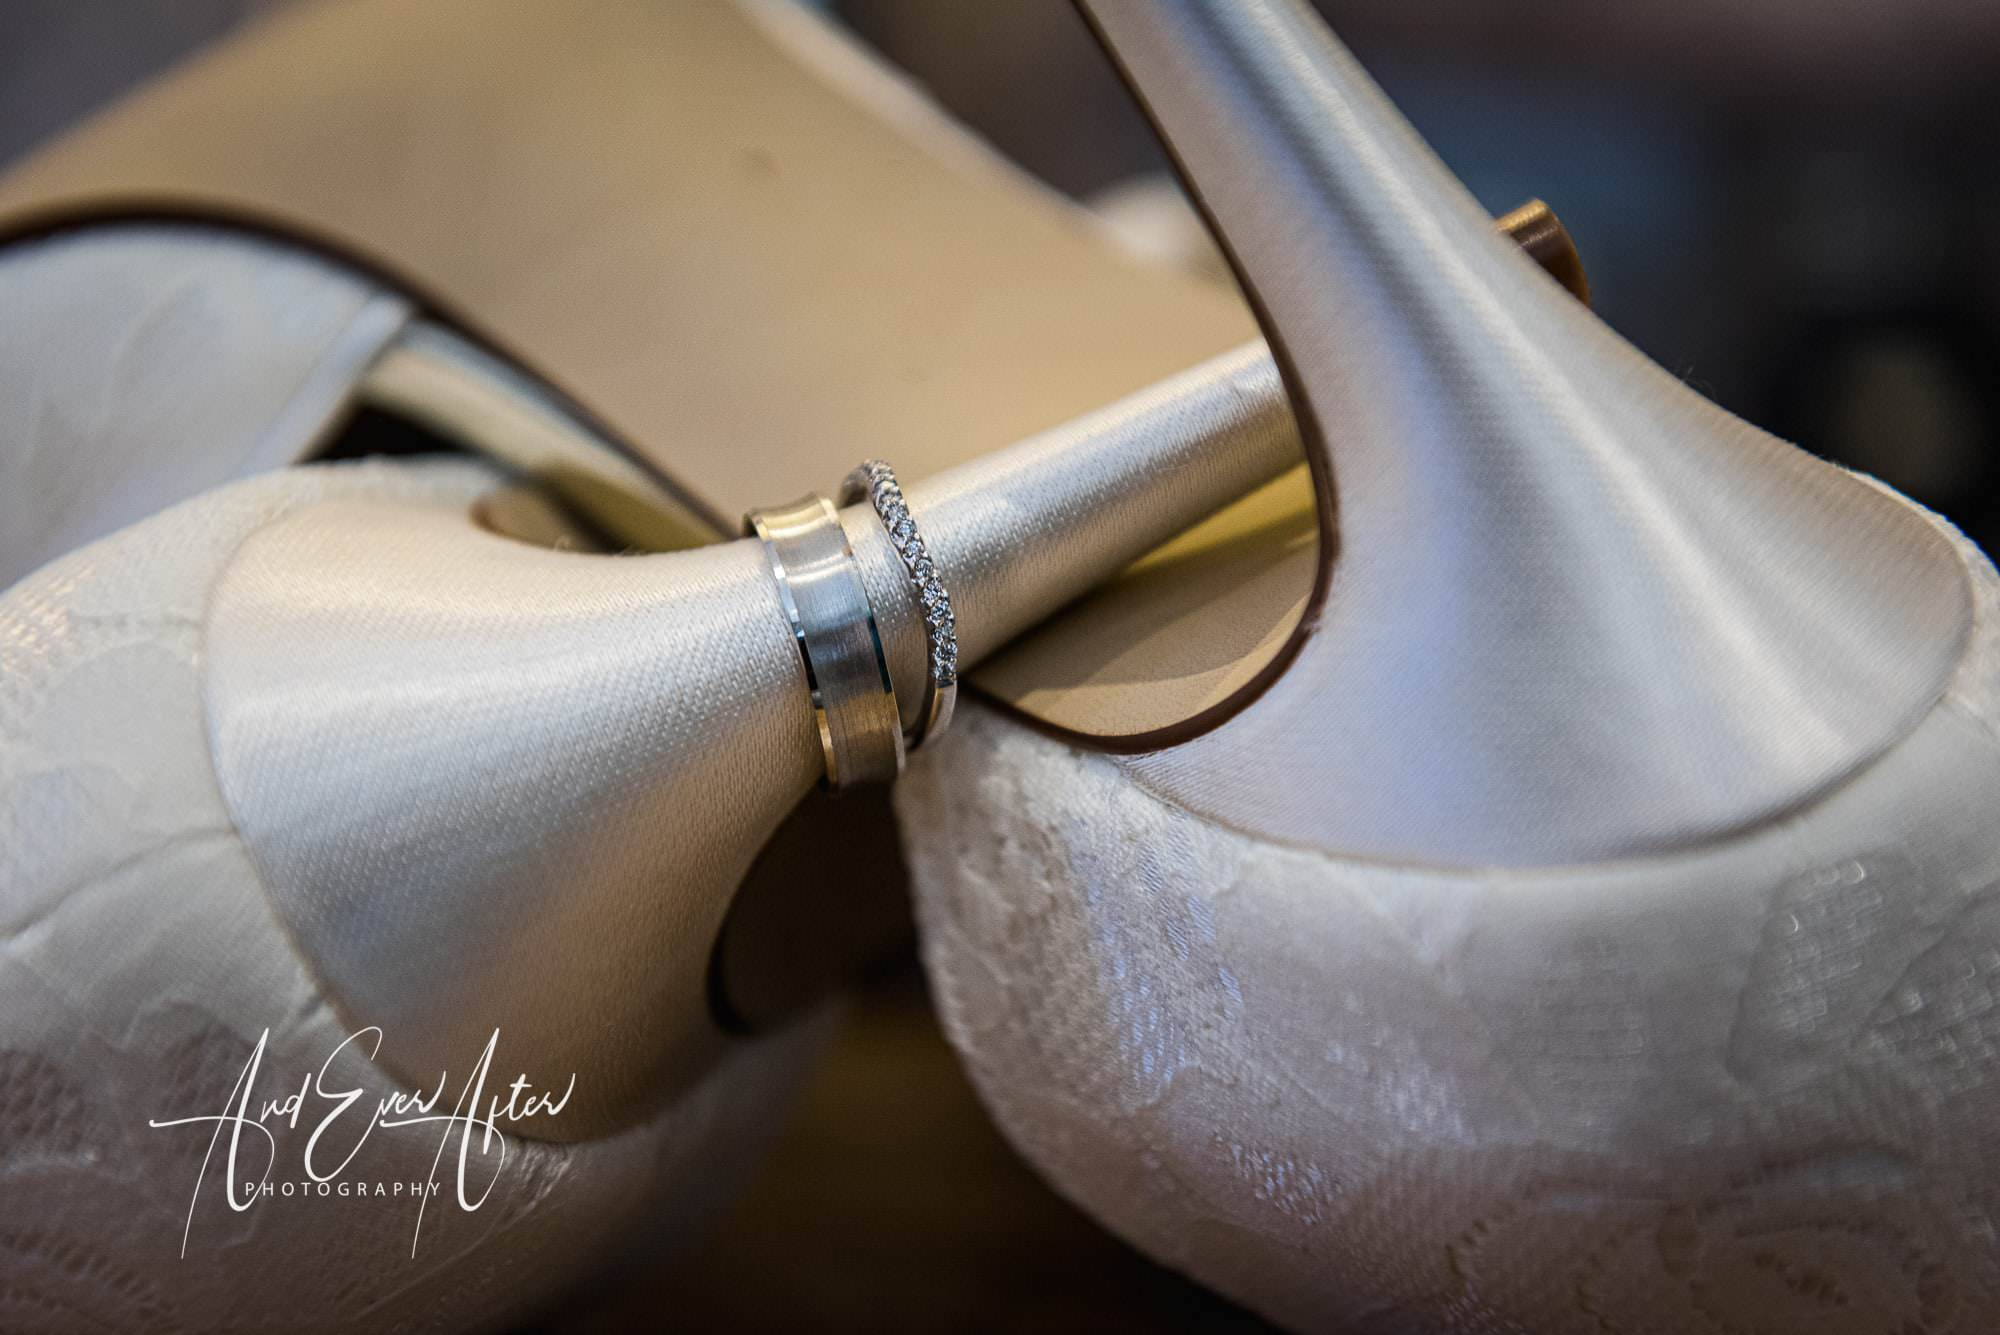 wedding rings, wedding day, Bridal shoes